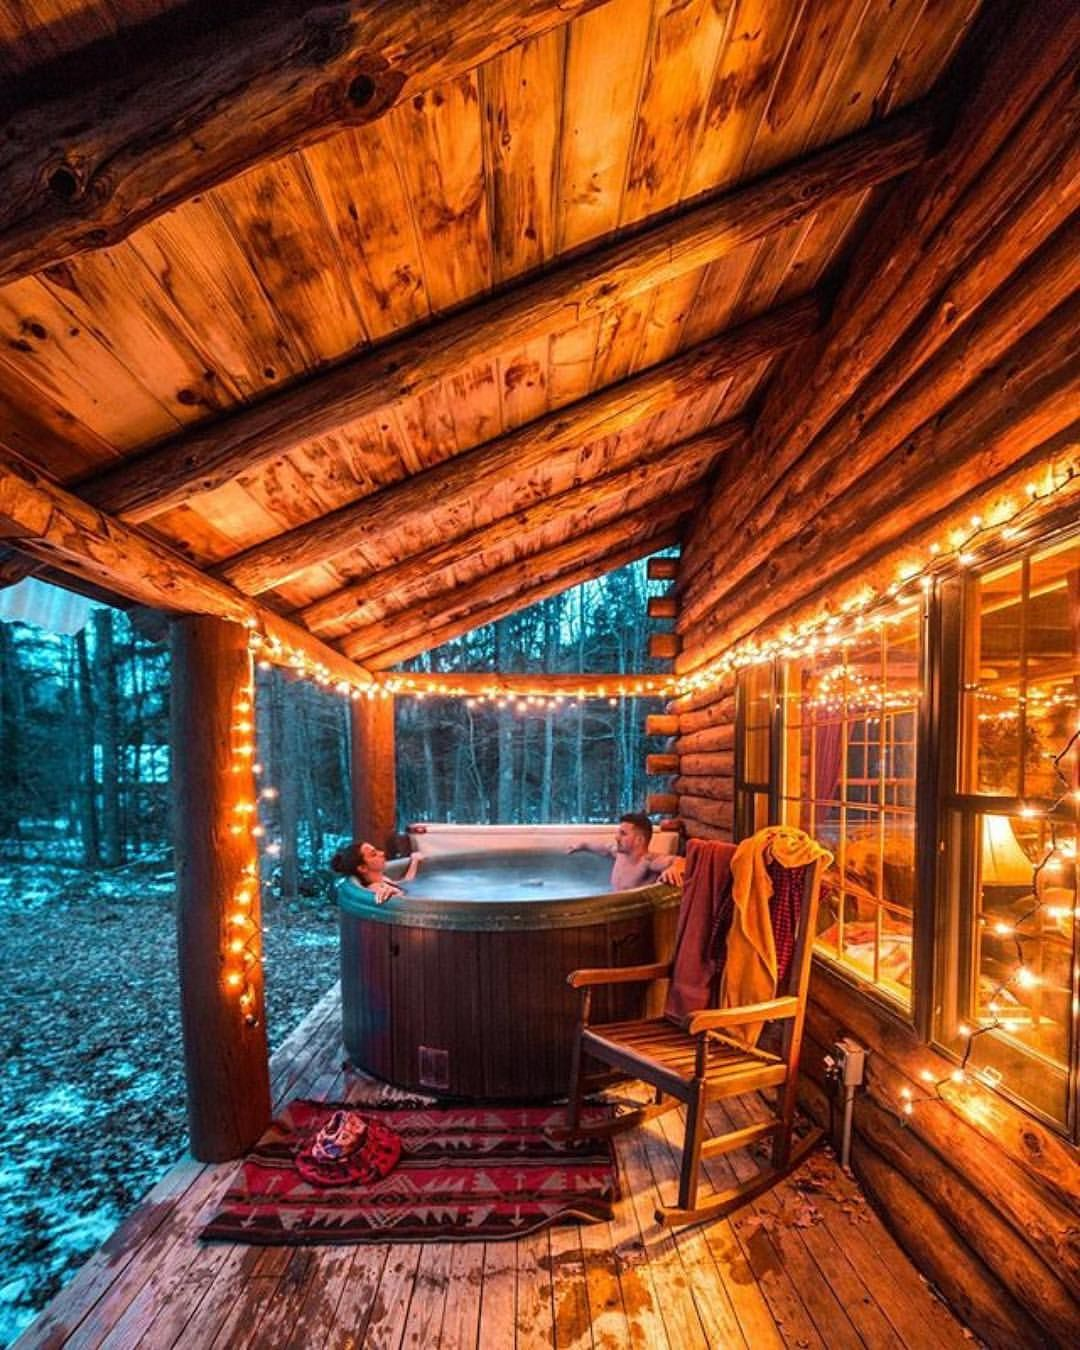 How About A Dip In The Hot Tub Follow Cabinsdaily For More Kylefinndempsey Cabins And Cottages Log Homes Cabin